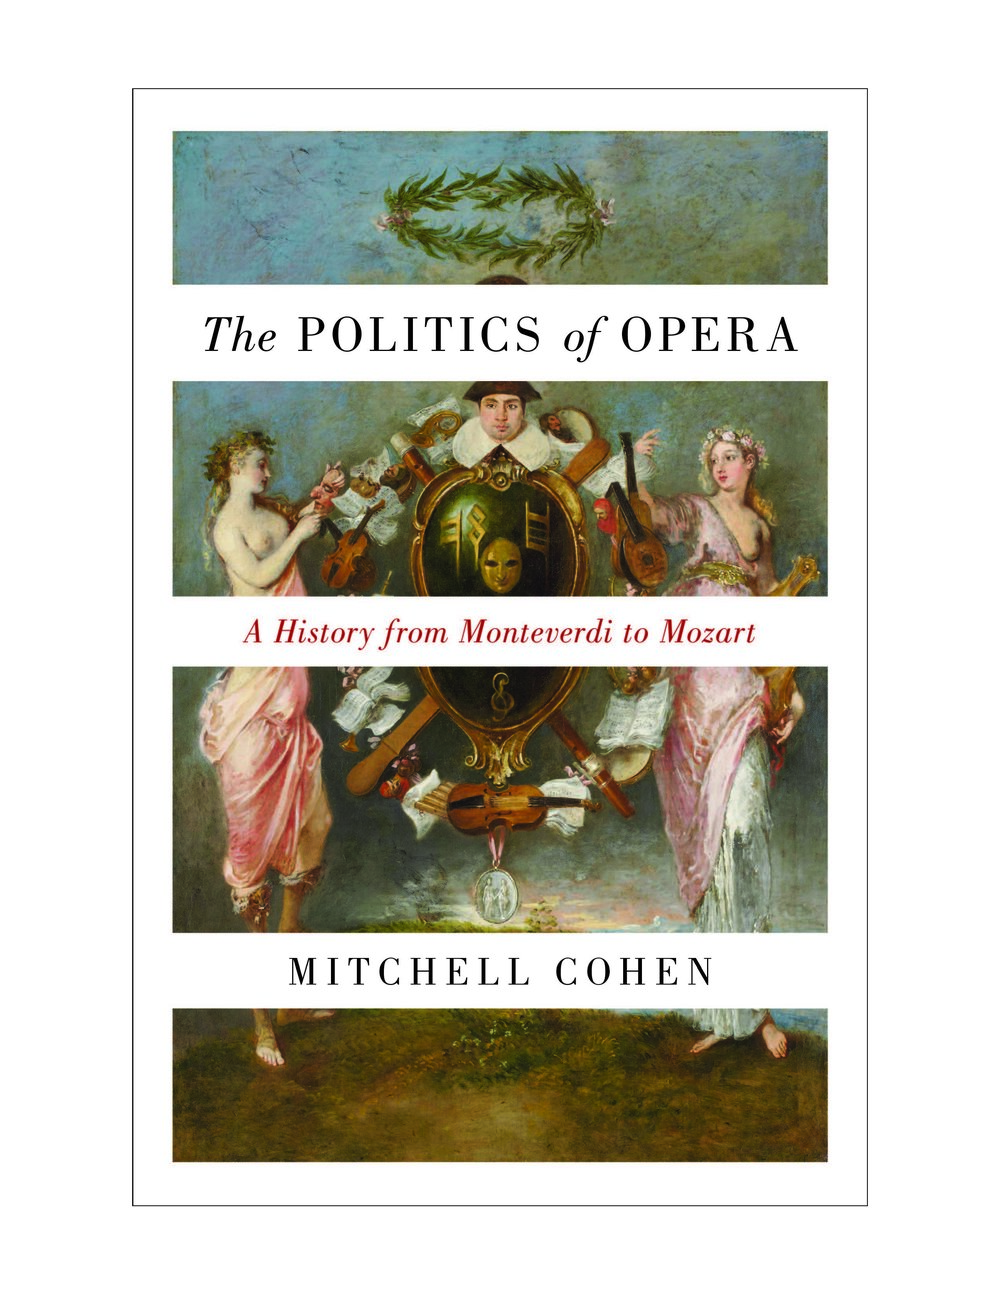 Book cover for Mitchell Cohen's  The Politics of Opera